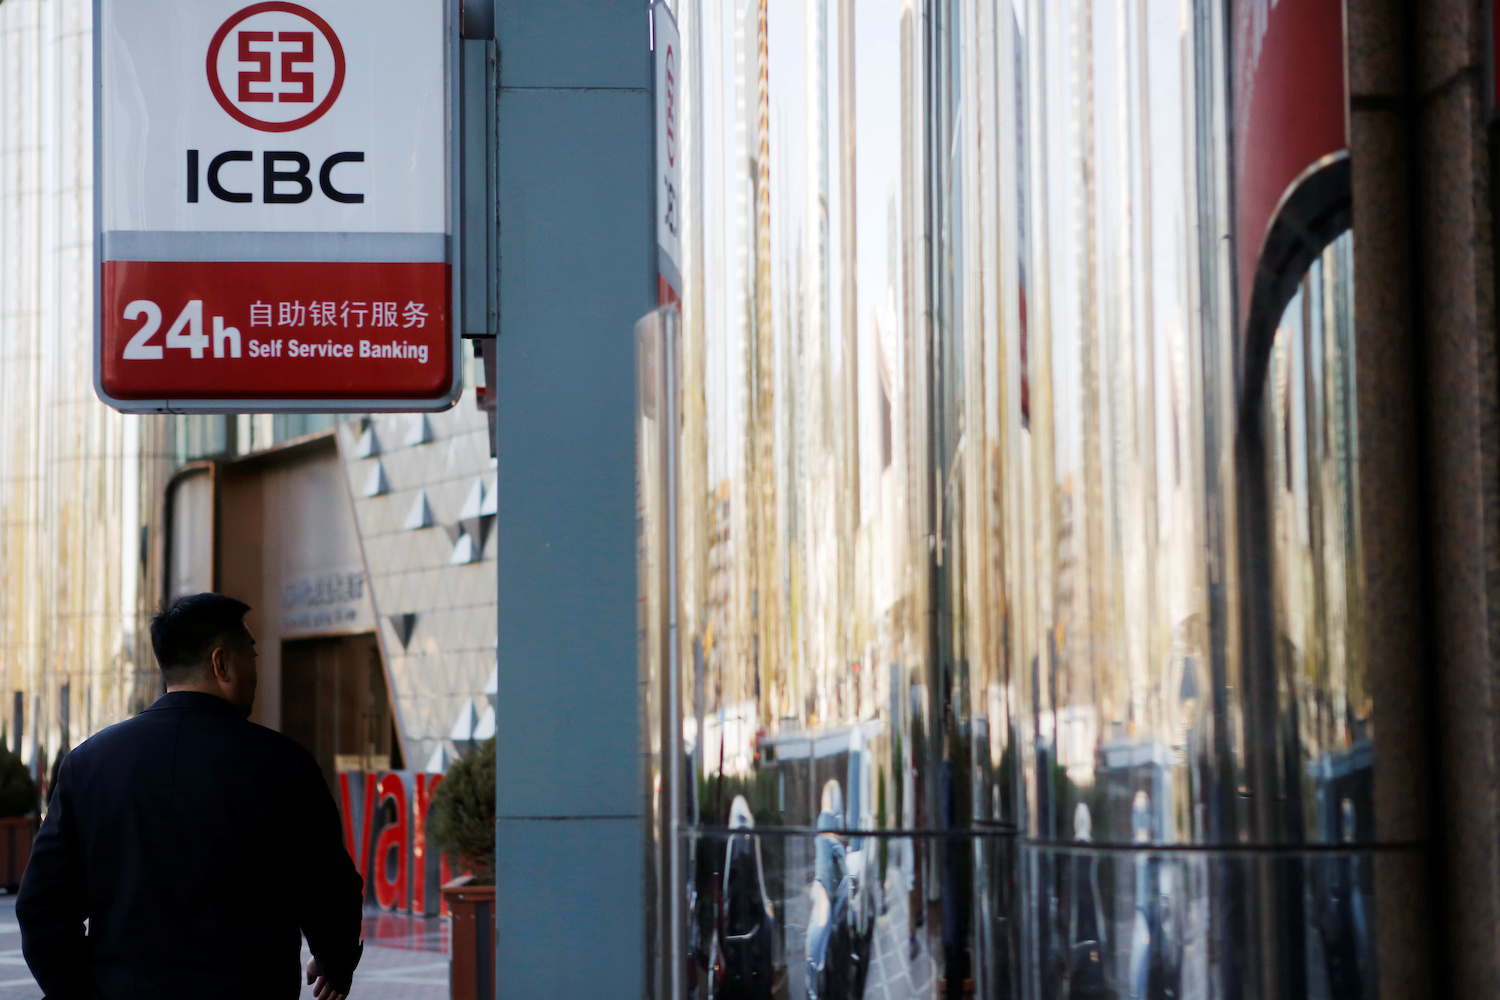 Chinese financial institutions face negative outlook, says Moody's